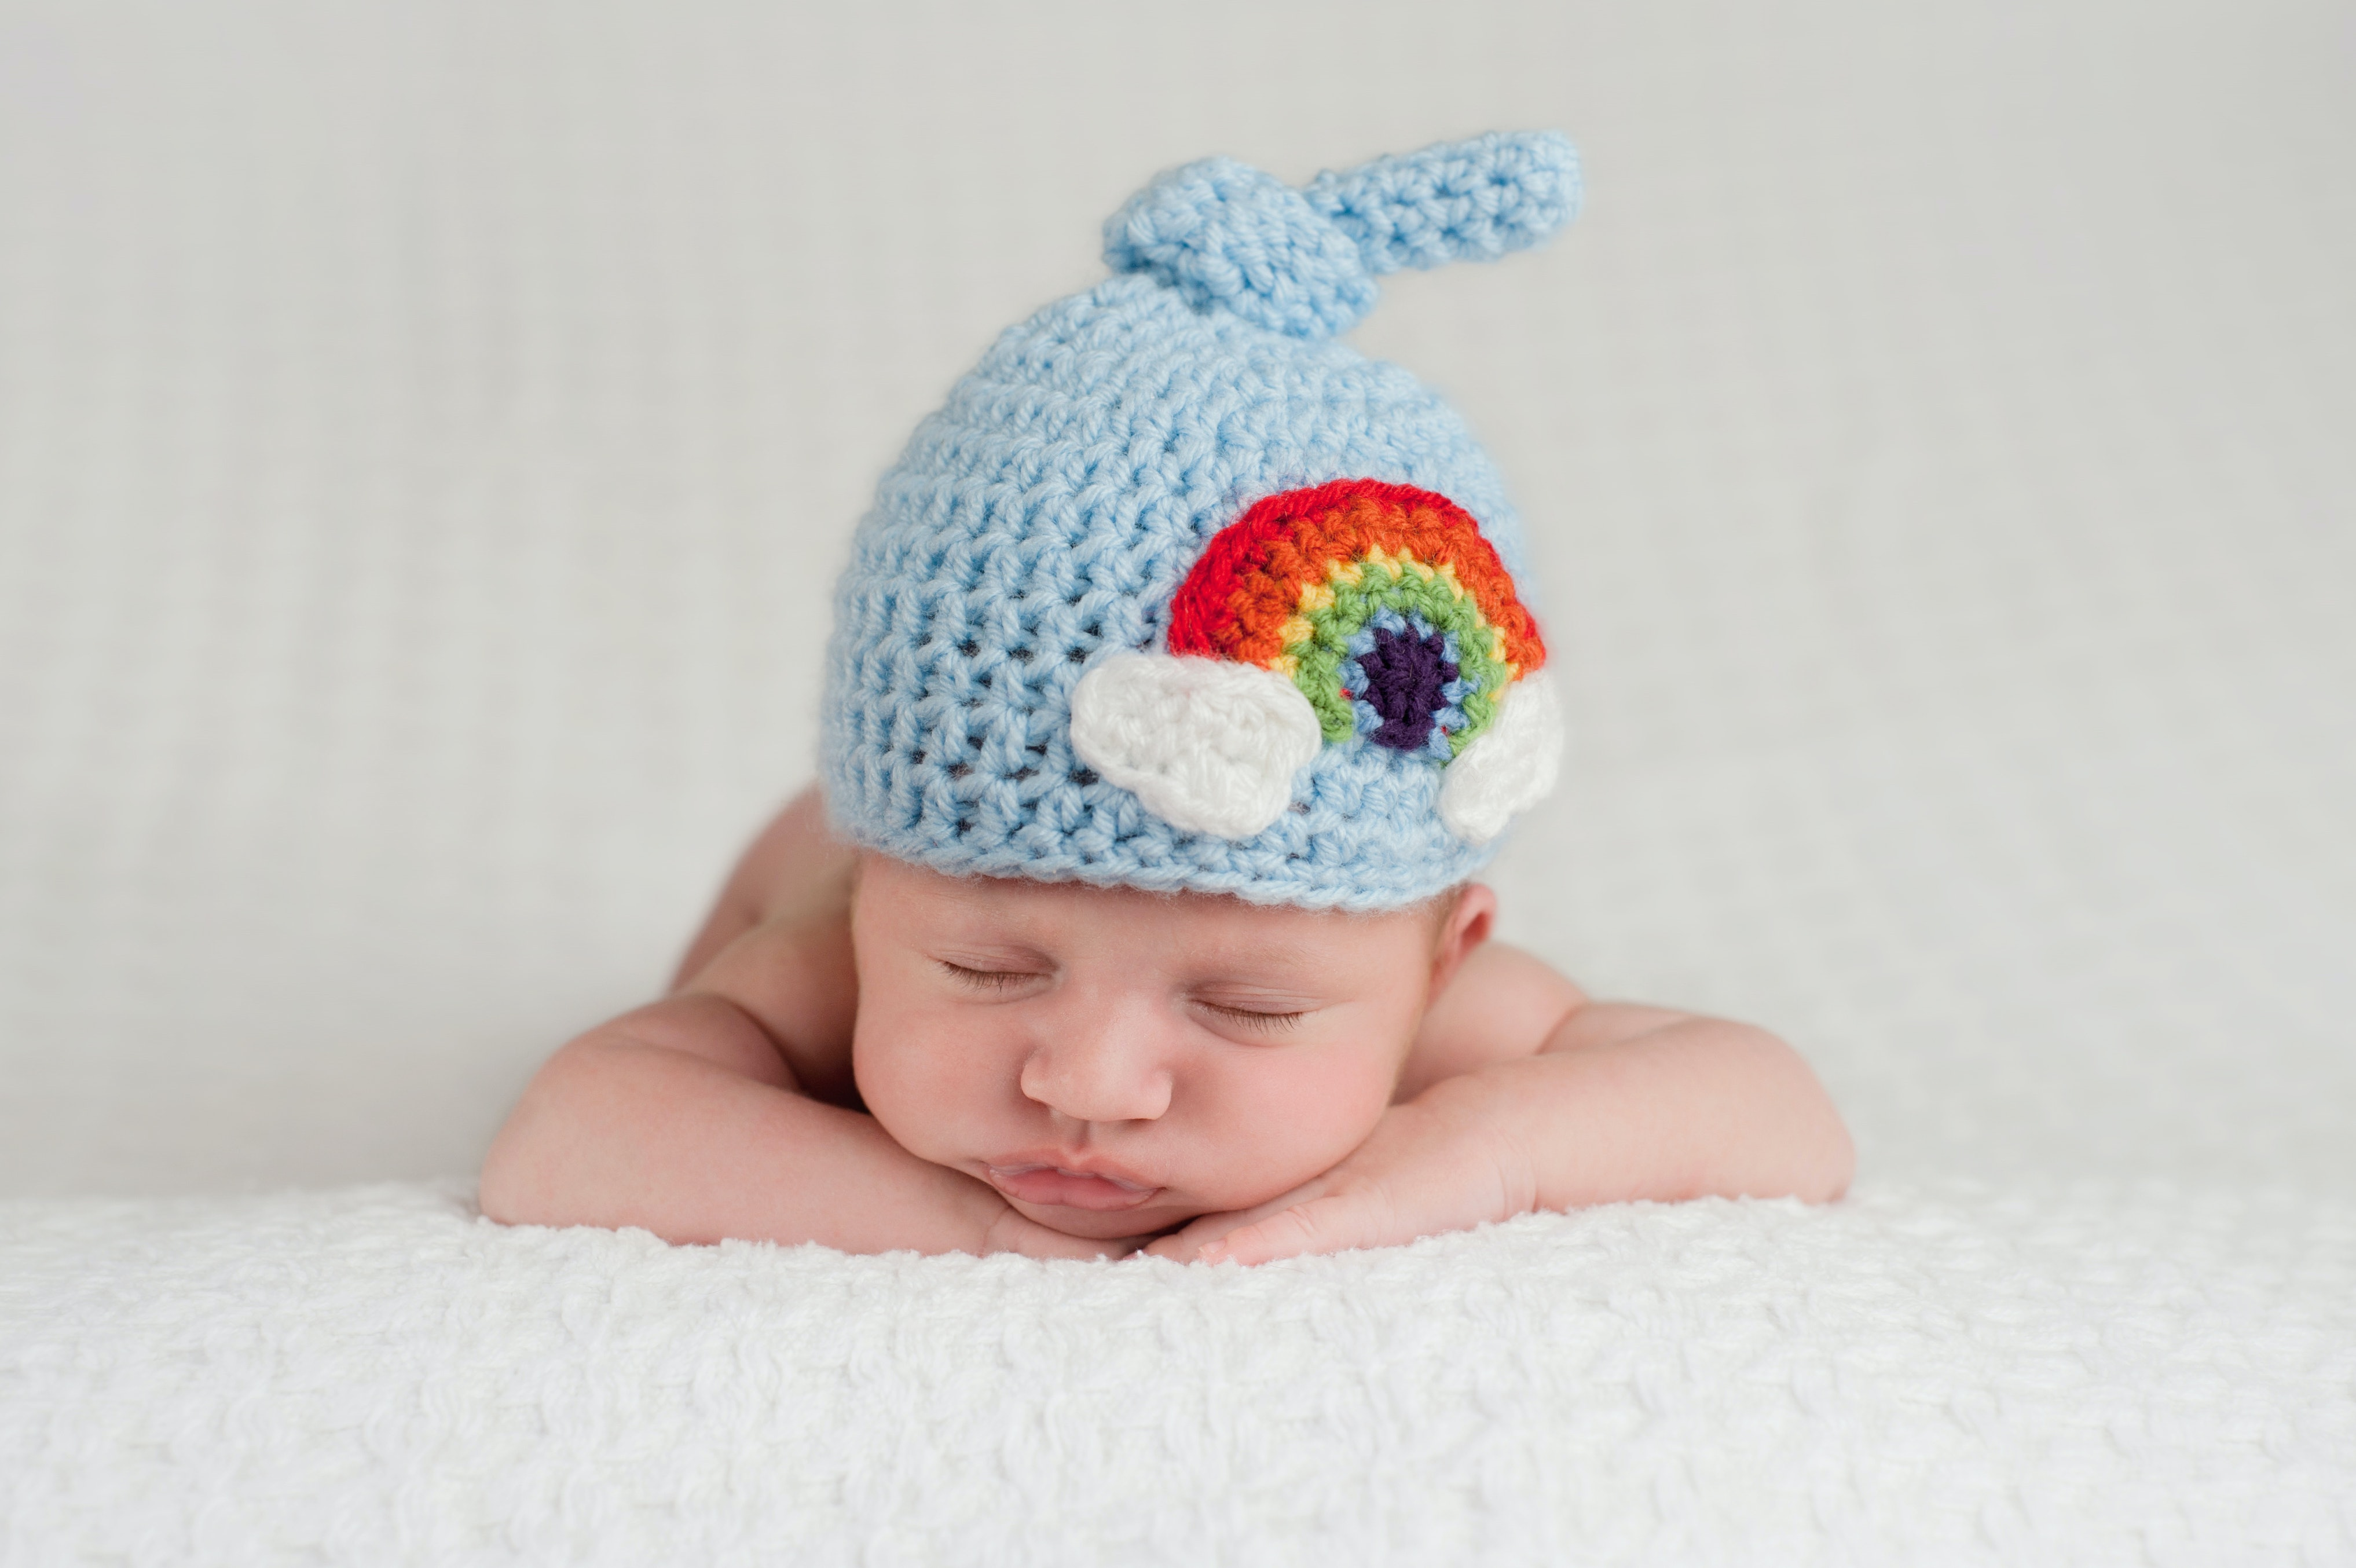 rainbow baby quotes in honor of rainbow baby day